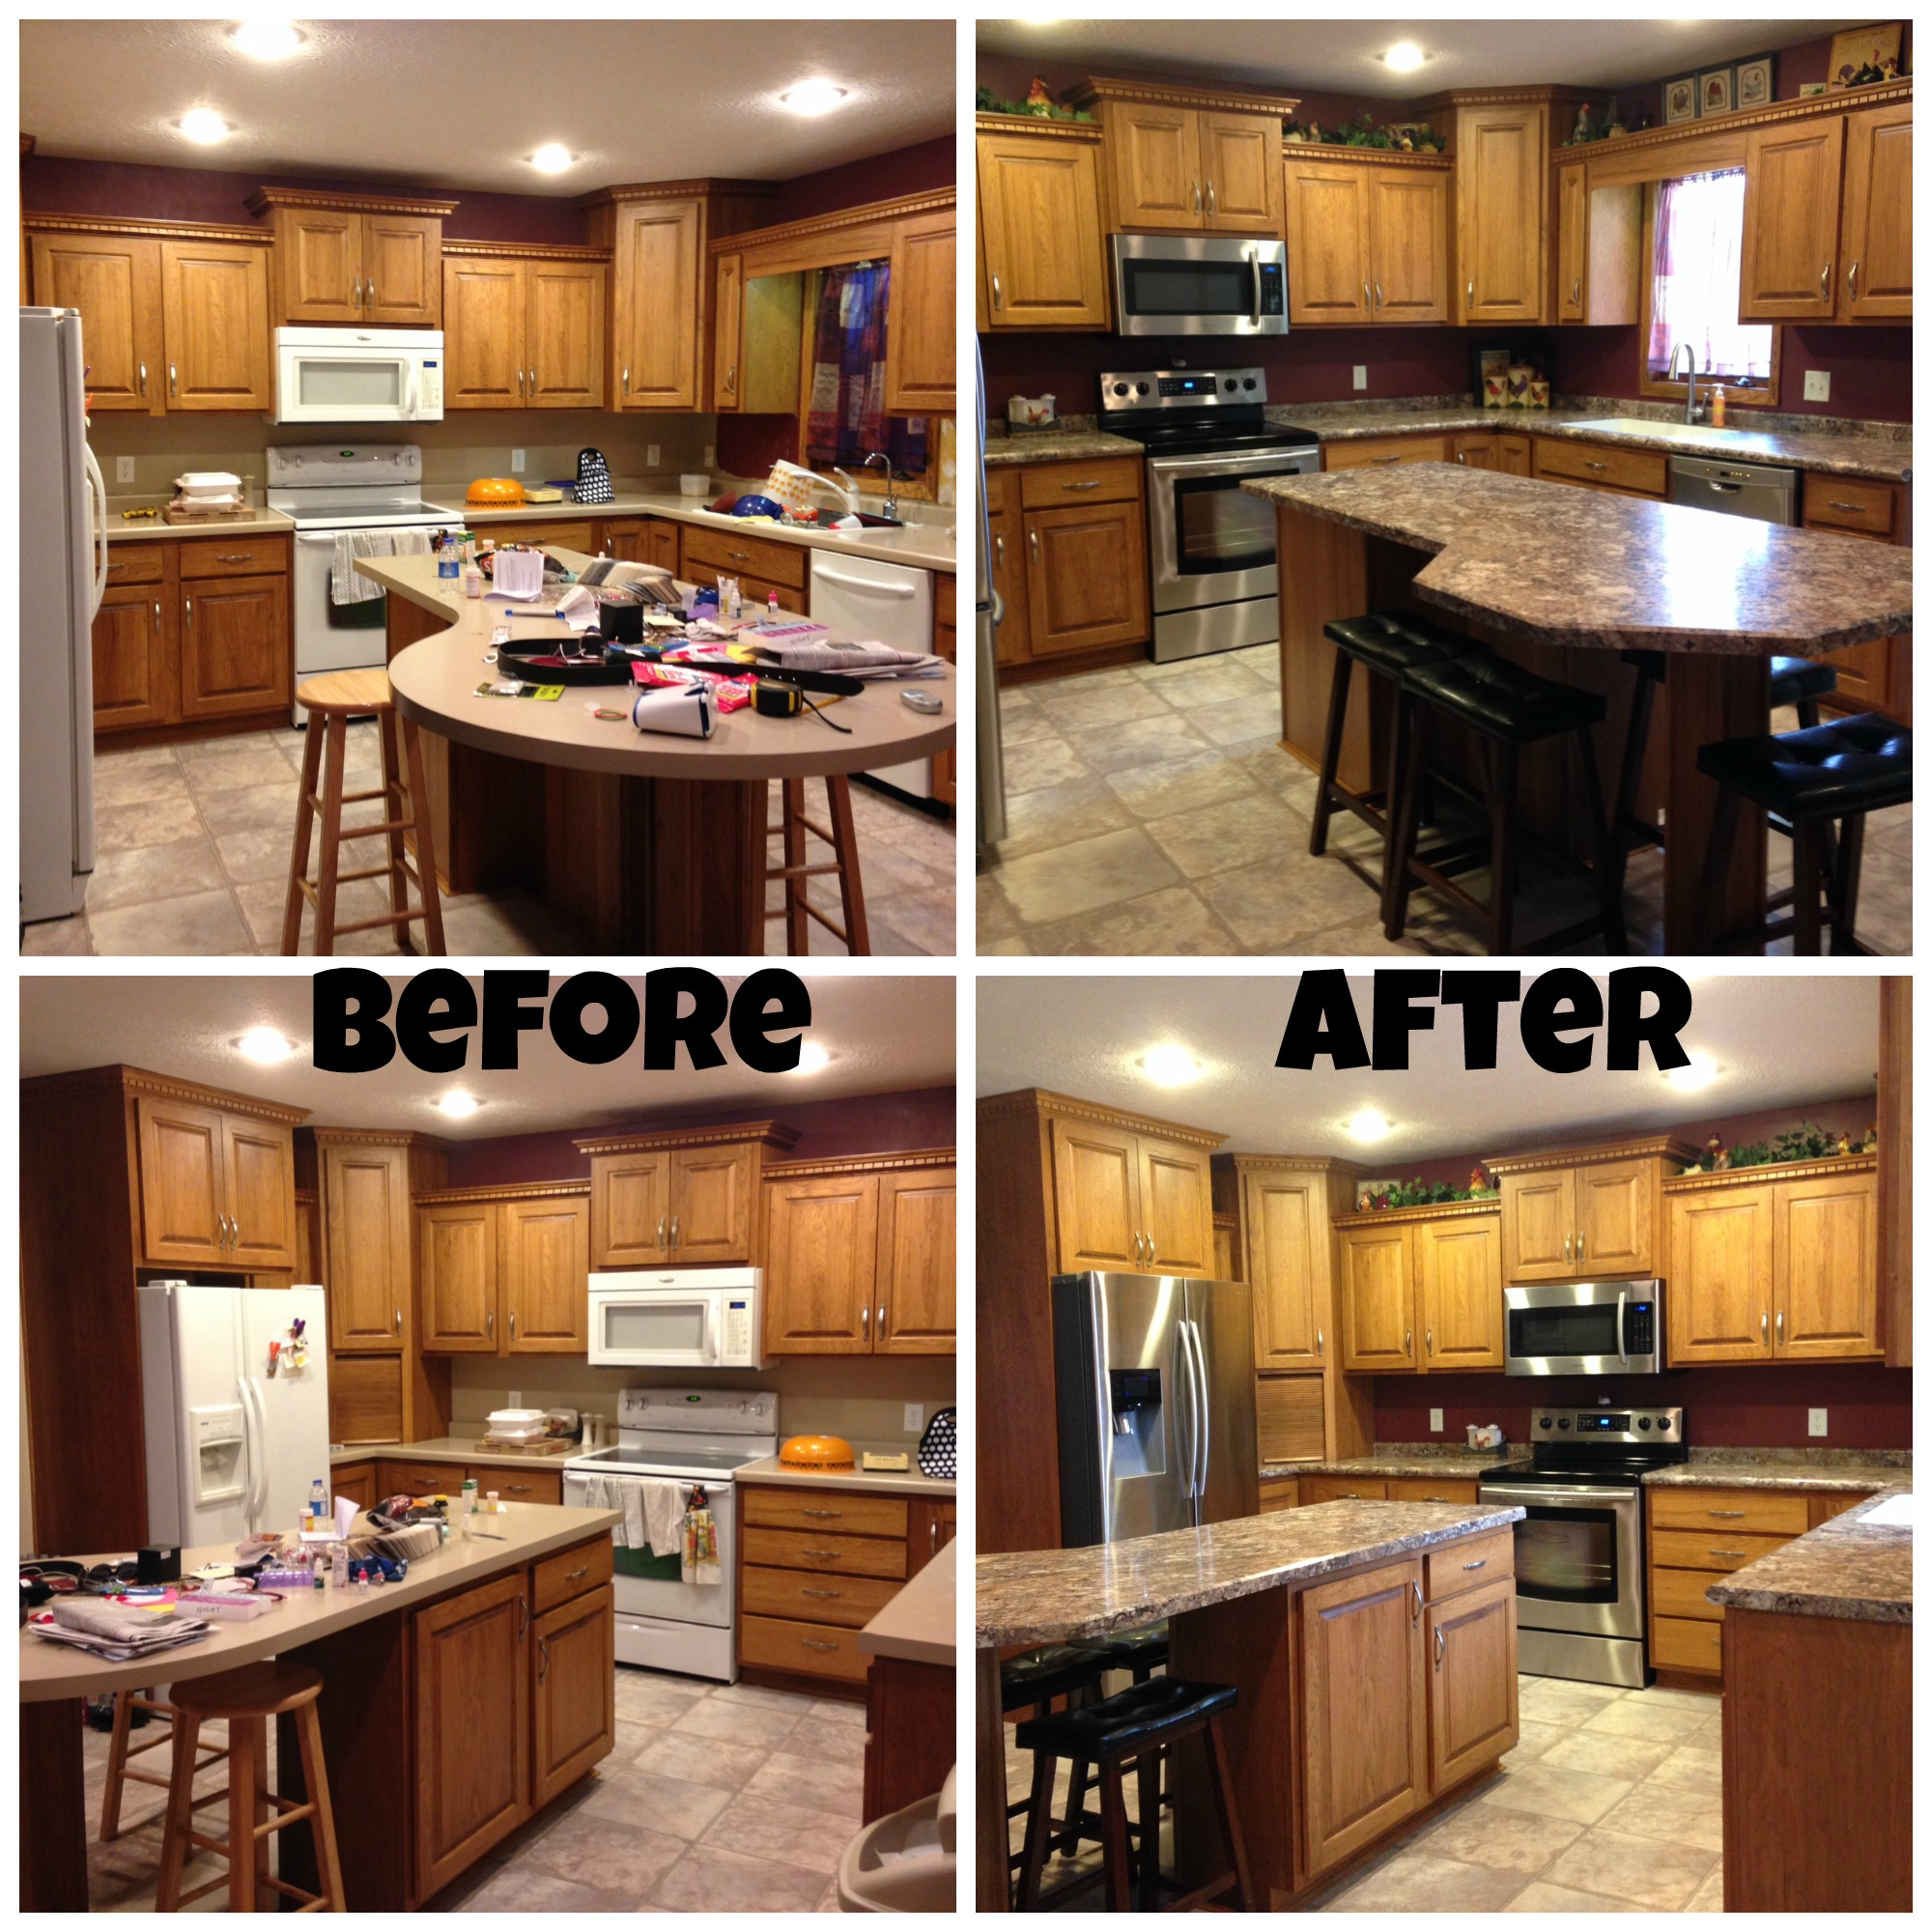 Kim's Kitchen Before / After Photos